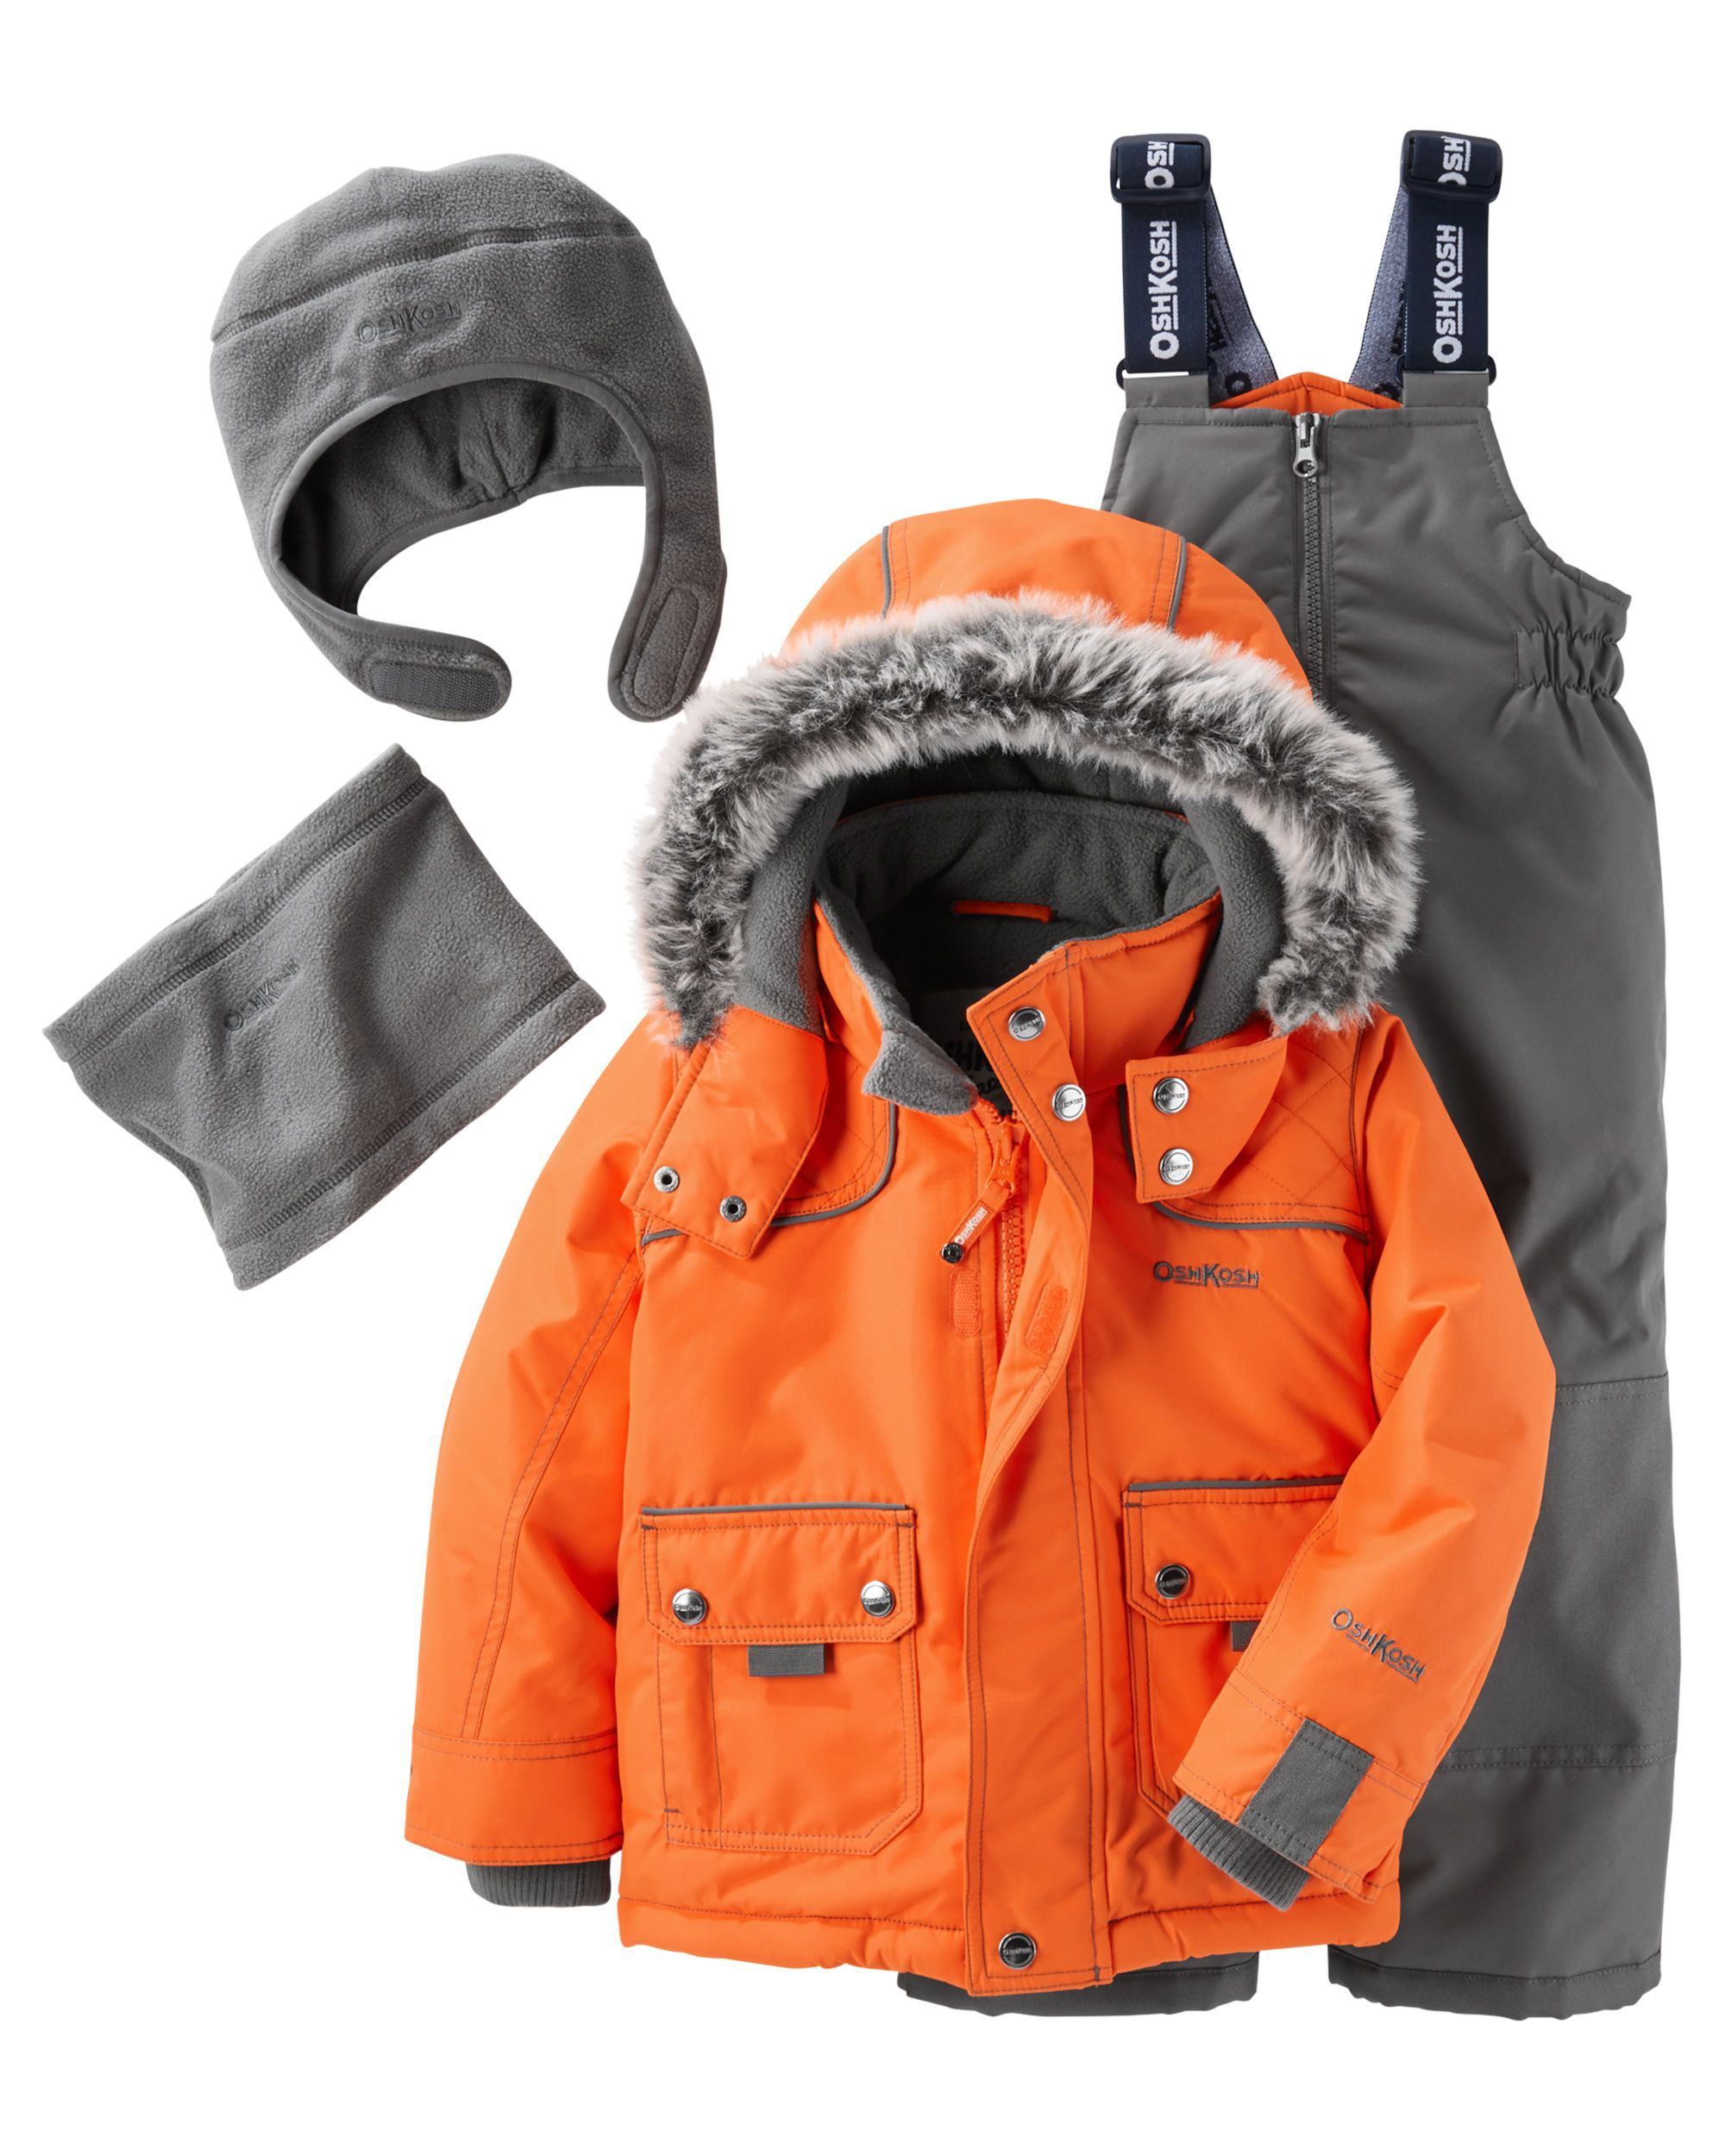 5ae3e879f 4-Piece Fleece-Lined Snowsuit Set | Carter's OshKosh Canada ...